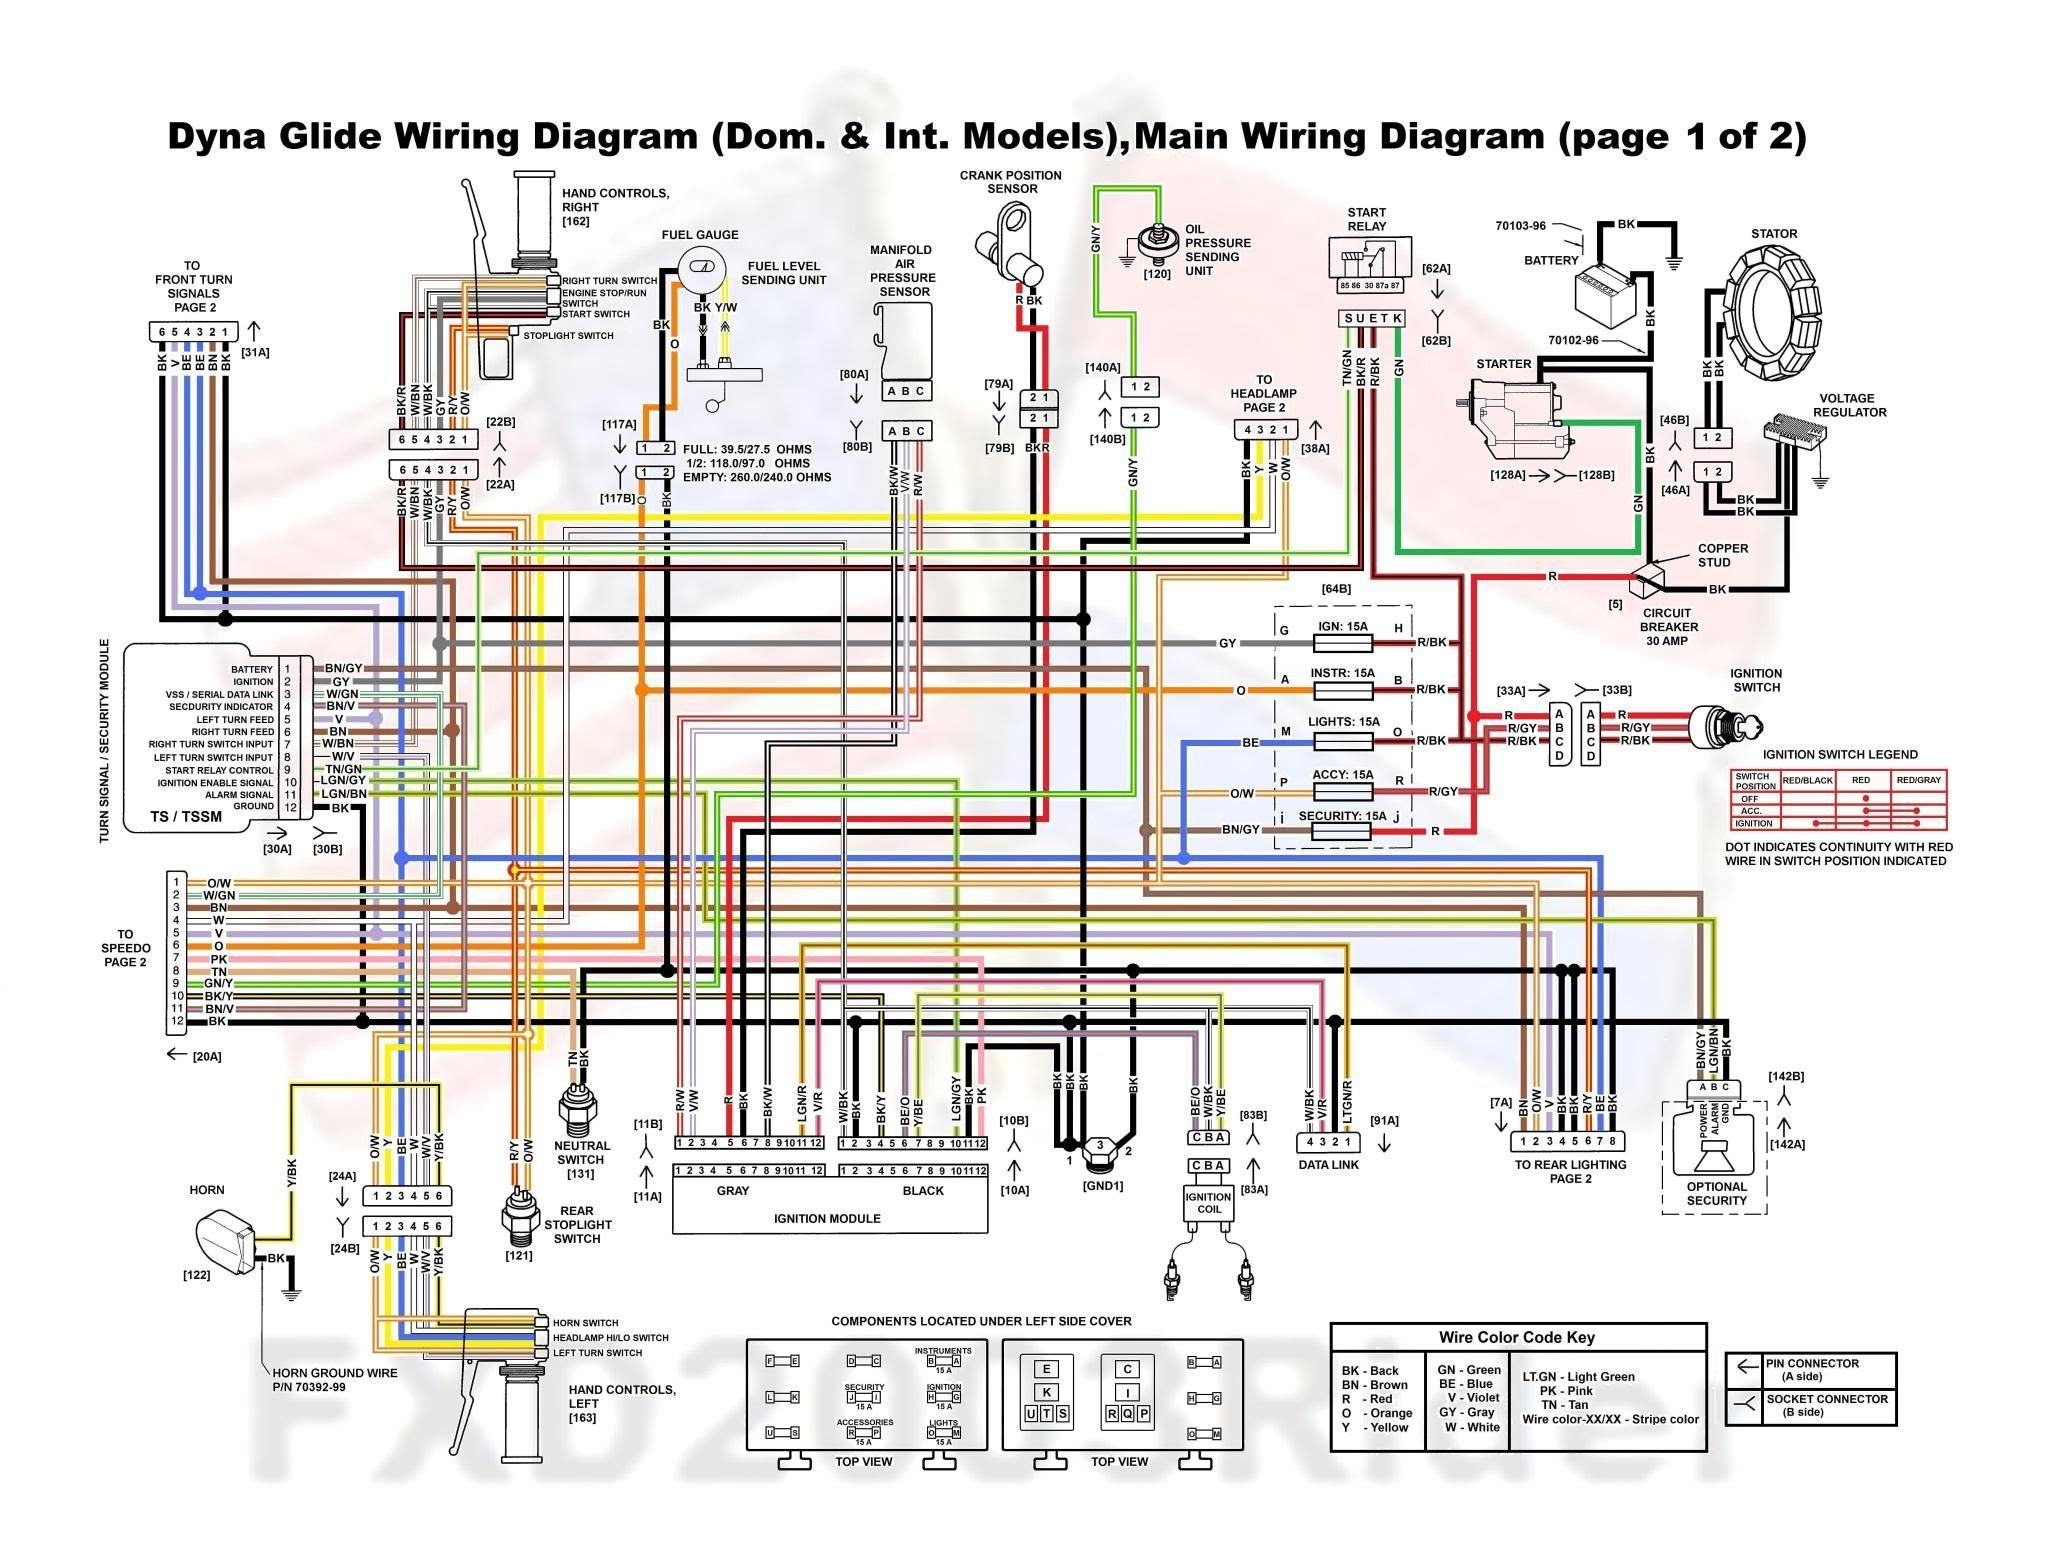 Basic Wiring Diagram For Harley Davidson  With Images